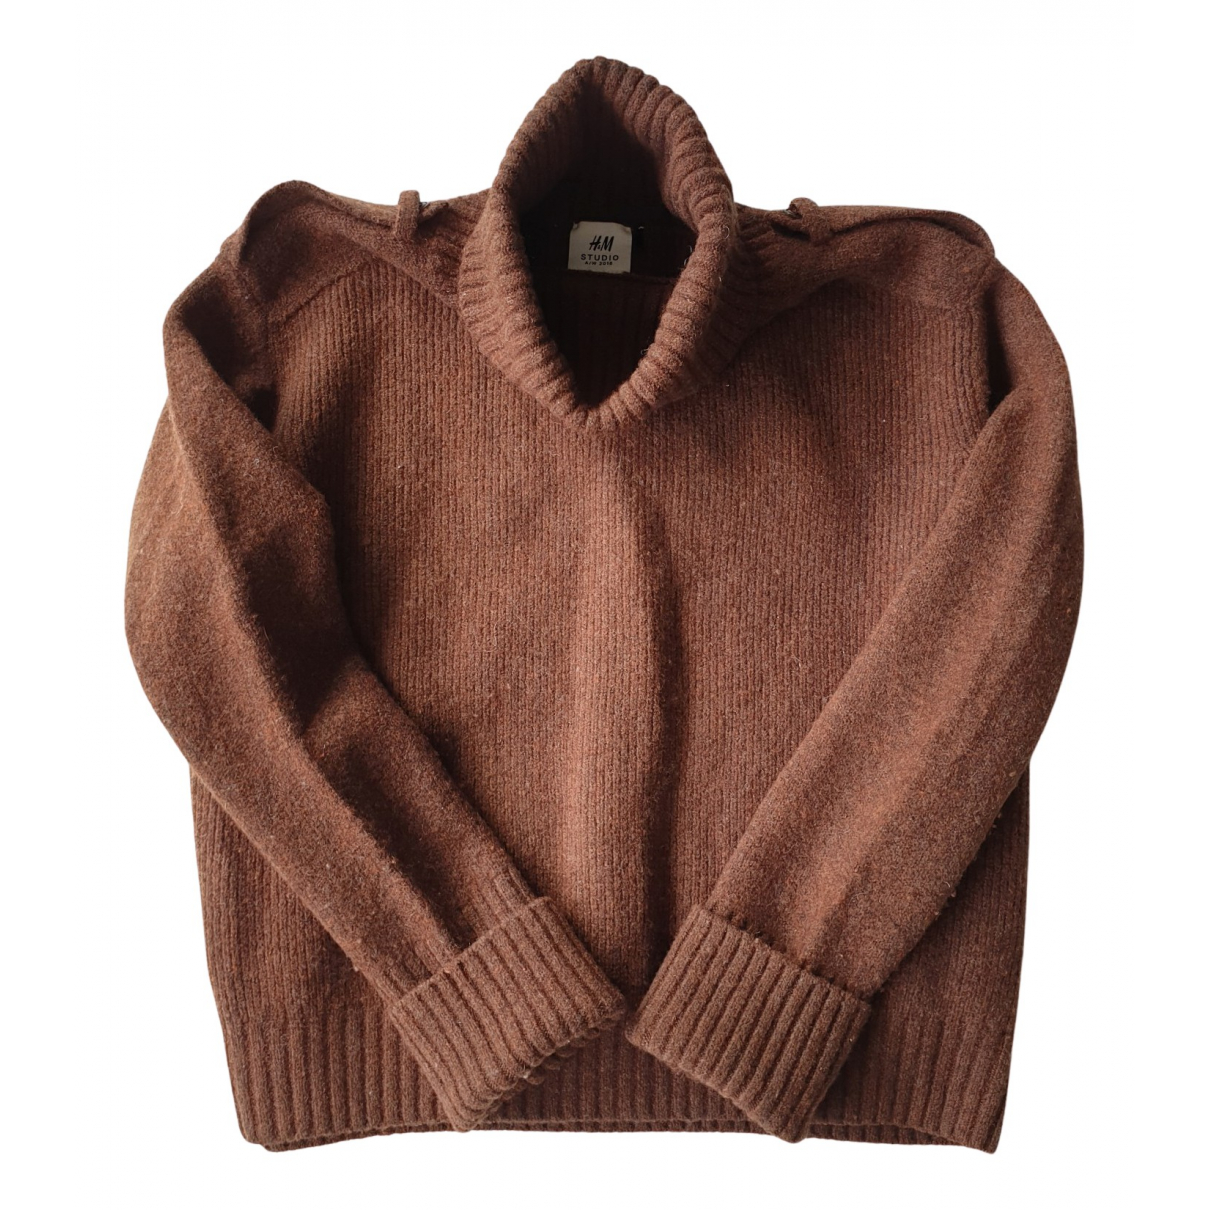 H&m Studio N Brown Wool Knitwear for Women 40 FR